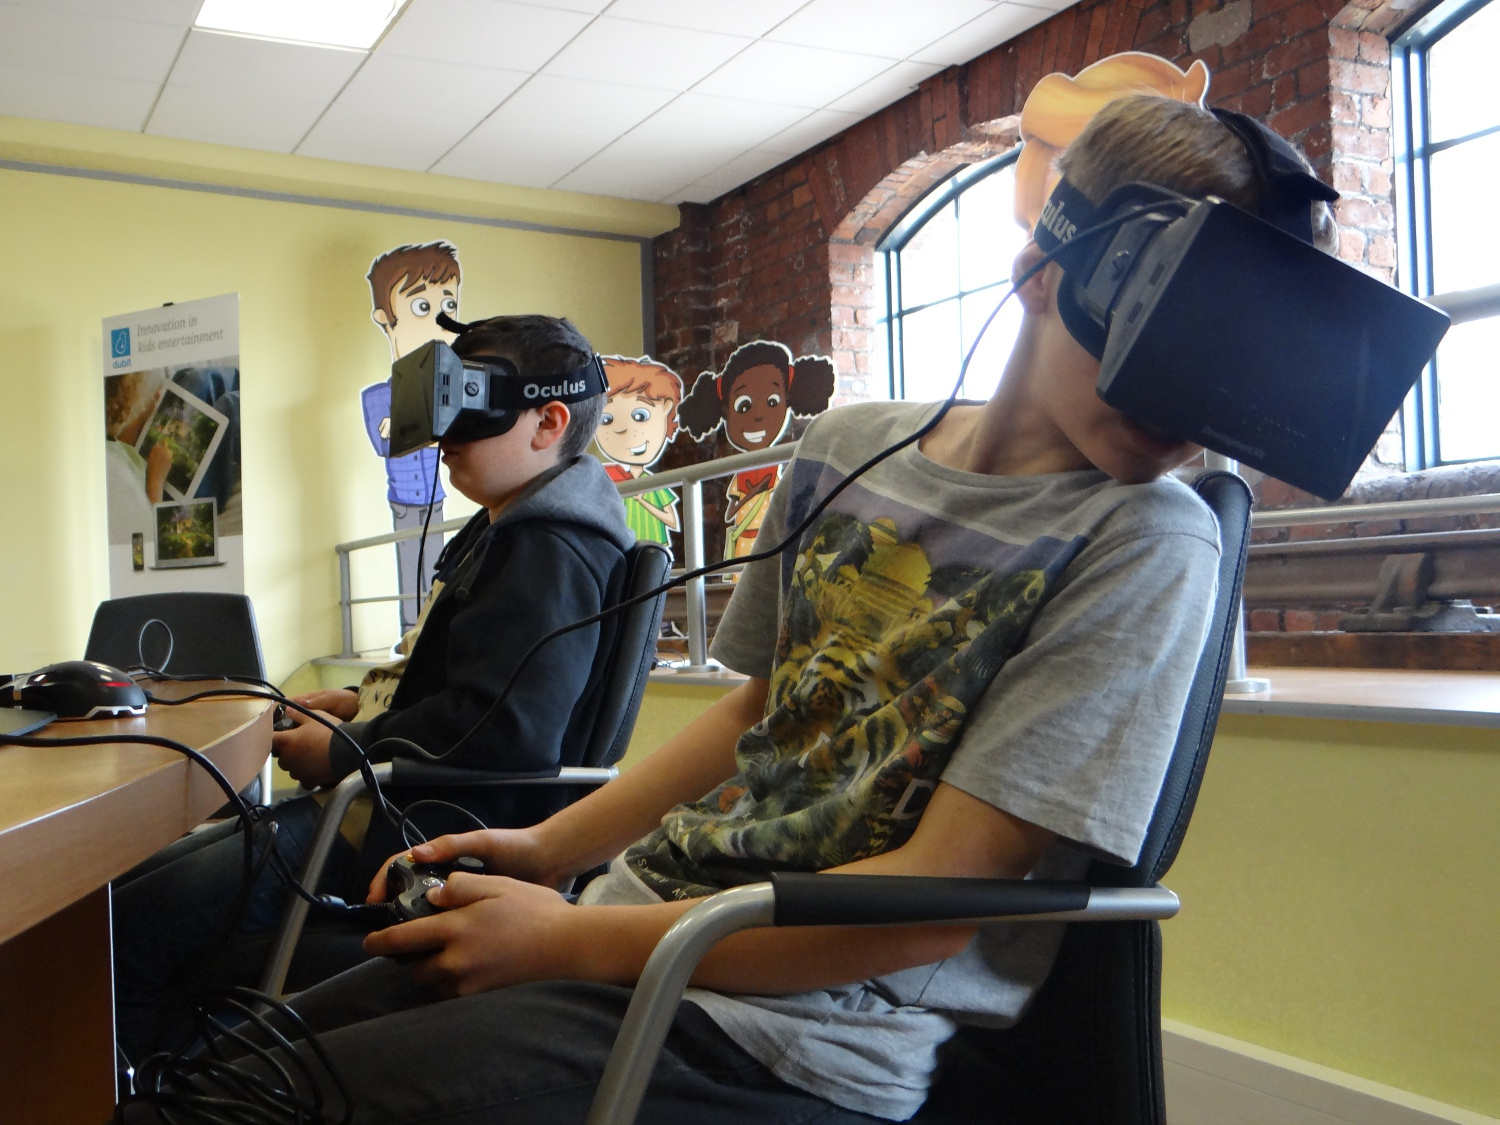 Kids testing out the Oculus Rift.